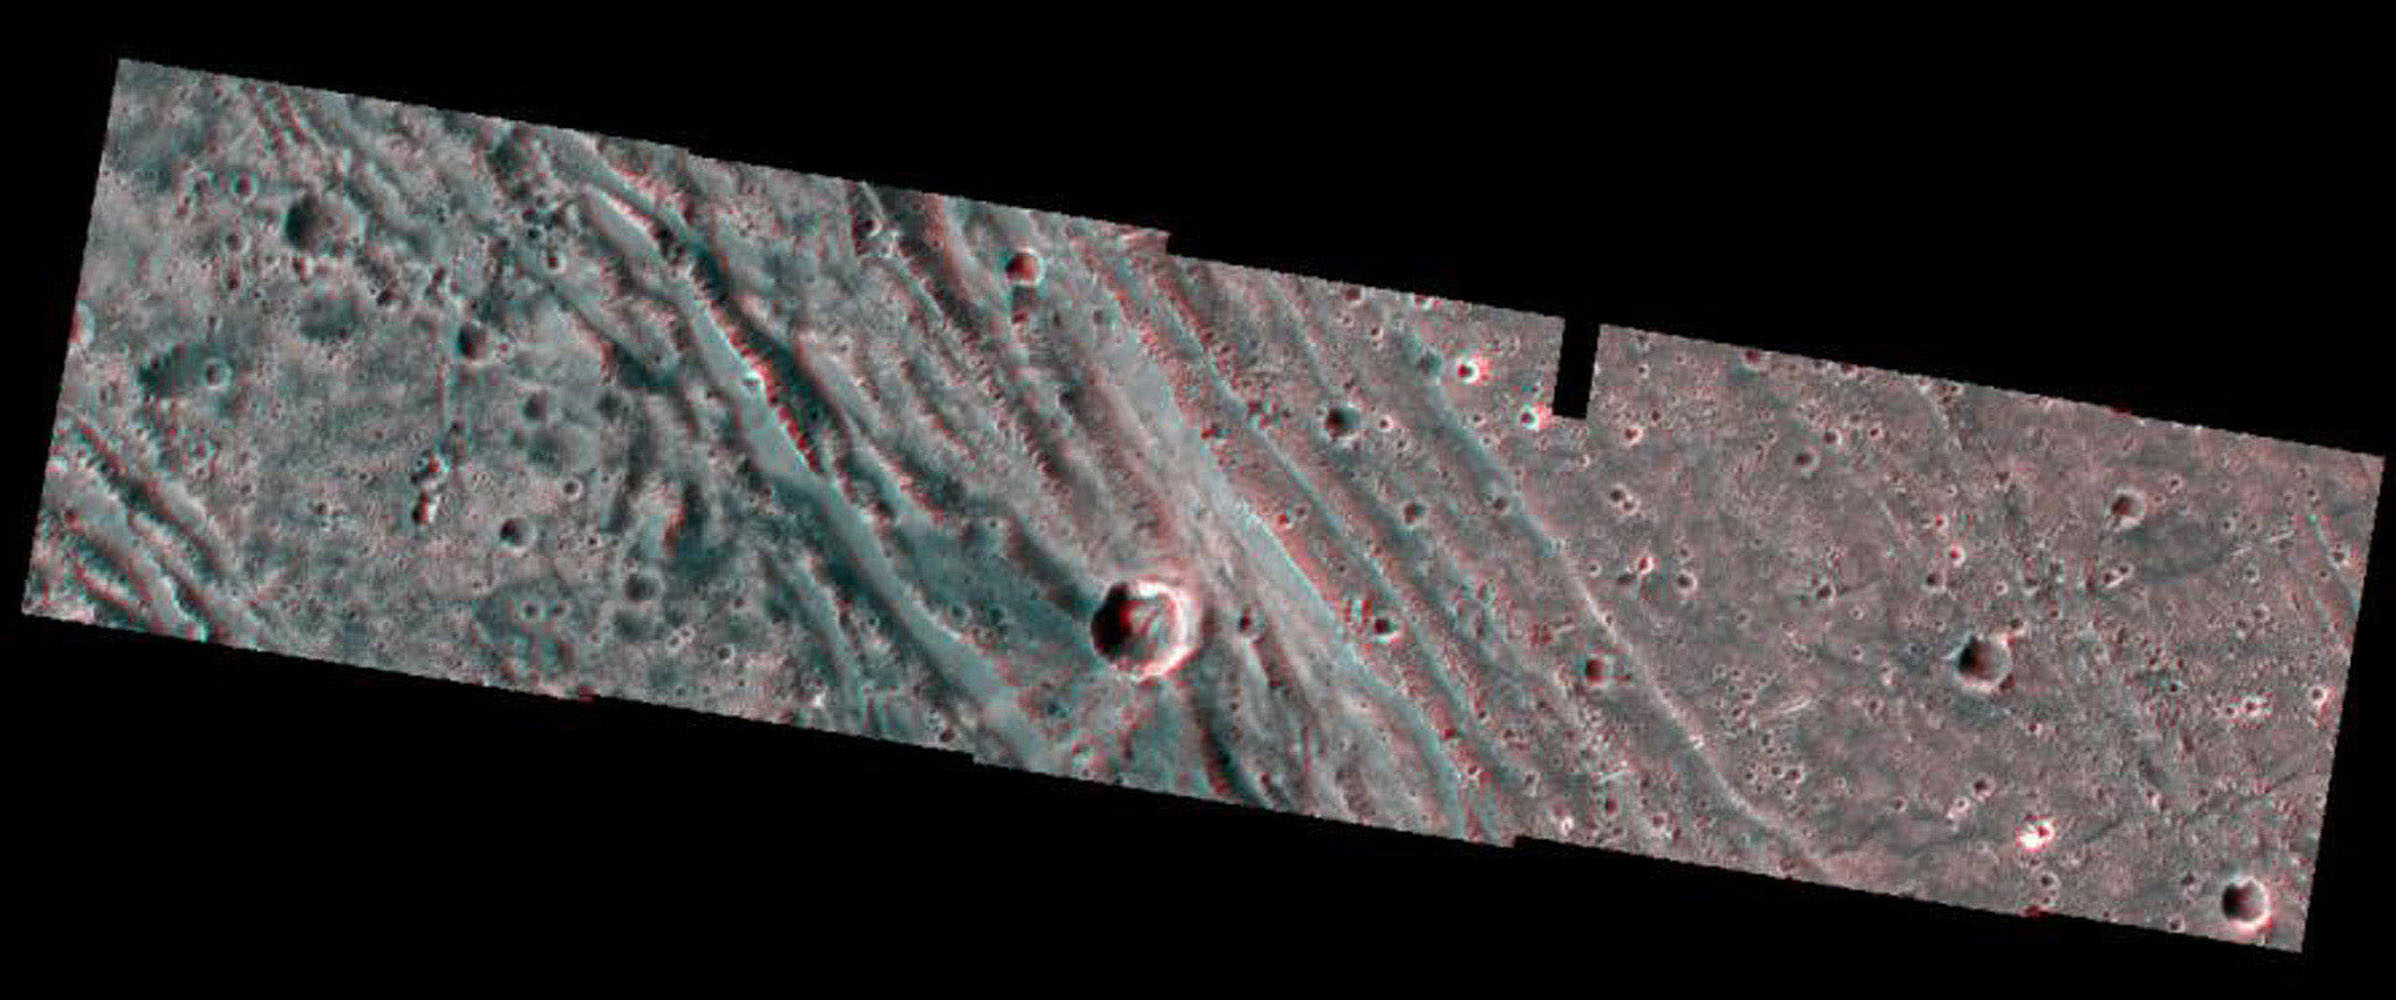 The boundary between the bright terrain of Harpagia Sulcus and dark terrain of Nicholson Regio areas of Jupiter's moon Ganymede springs out when viewed through red/blue 3-D glasses, in this image taken by NASA's Galileo spacecraft as it flew by Ganymede.